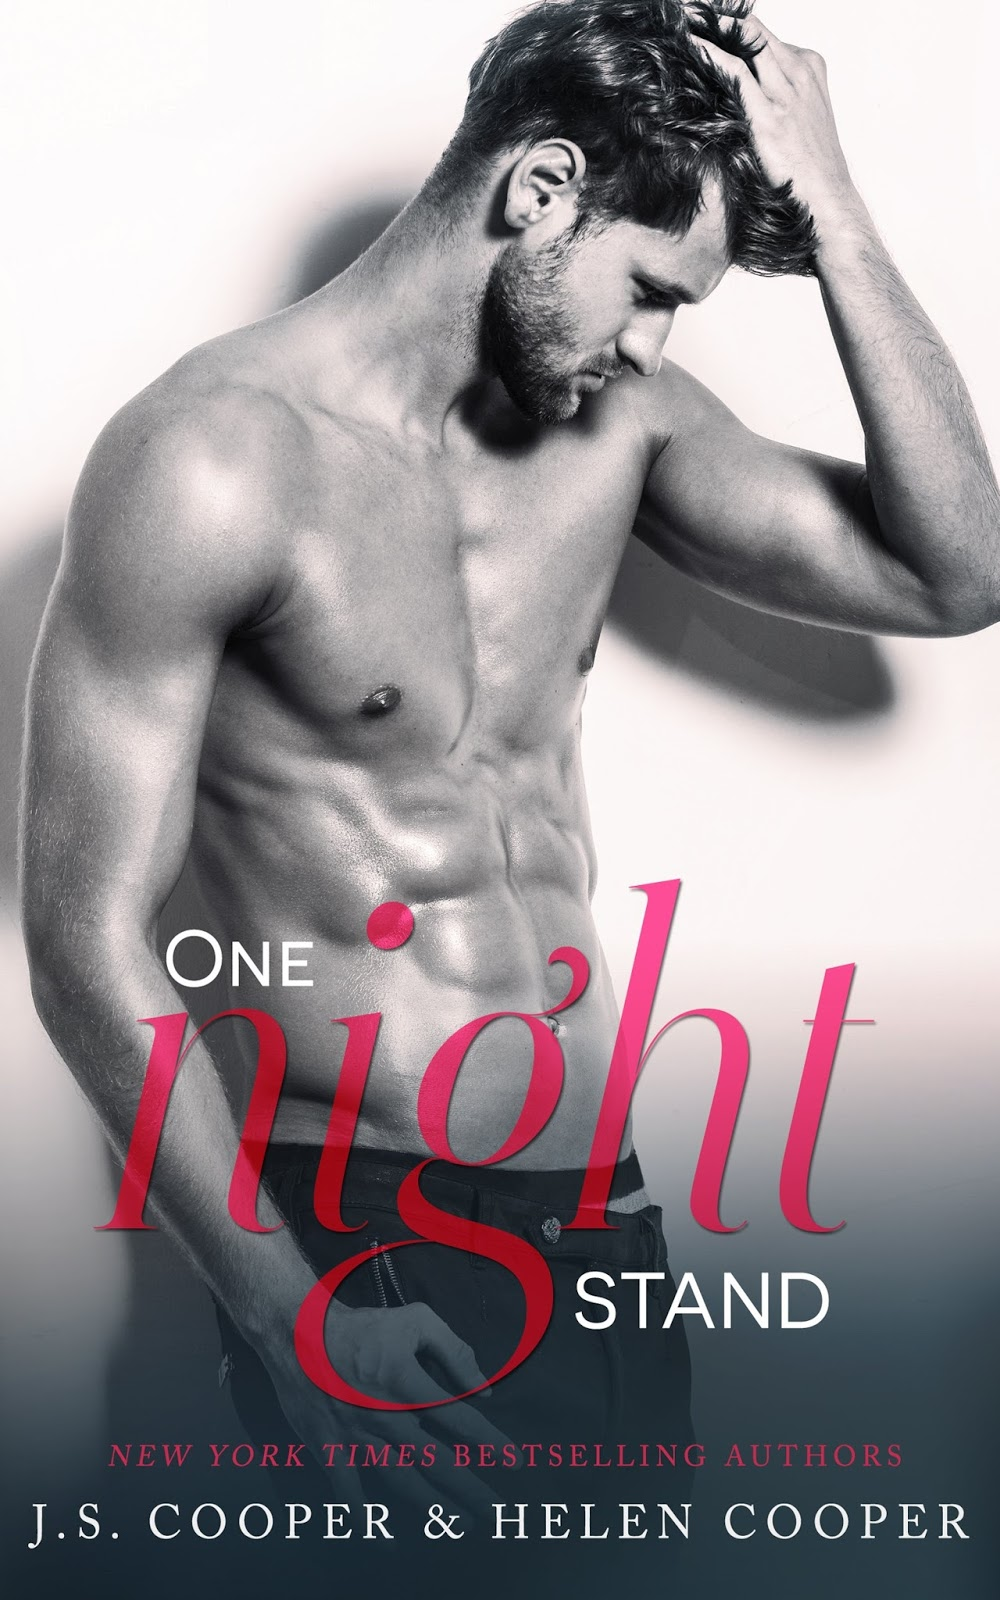 one night stand website classified ads